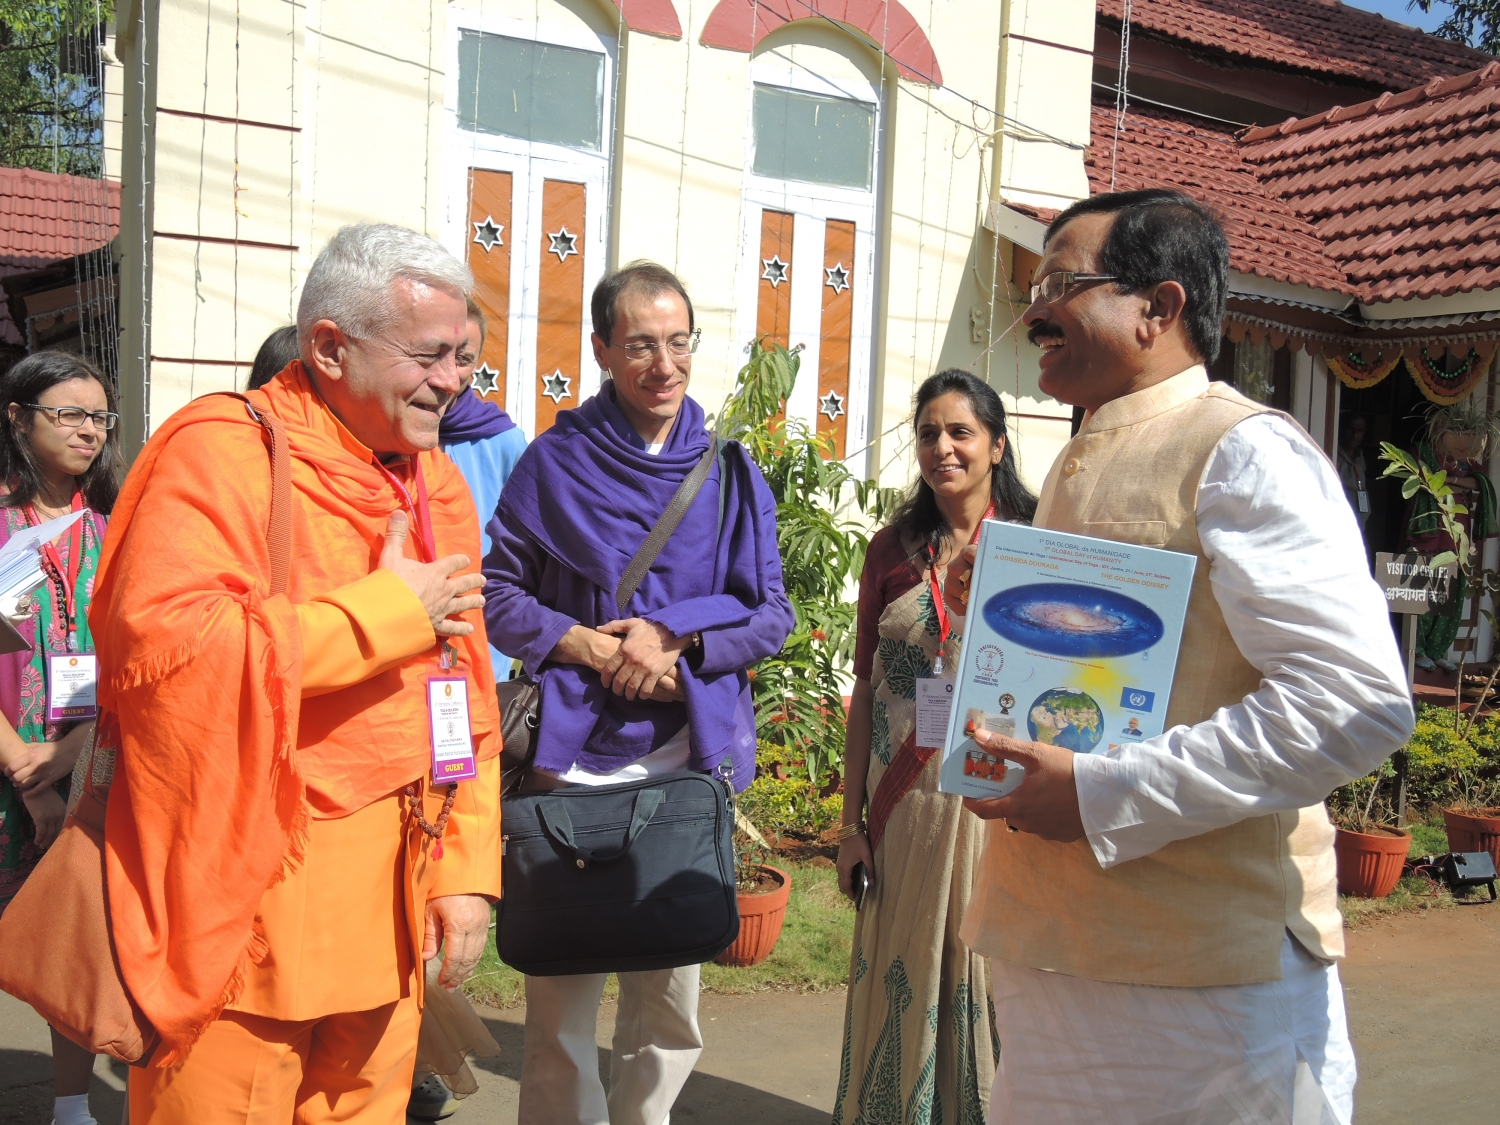 With Yoga Minister, Shrí Shripad Yesso Naik